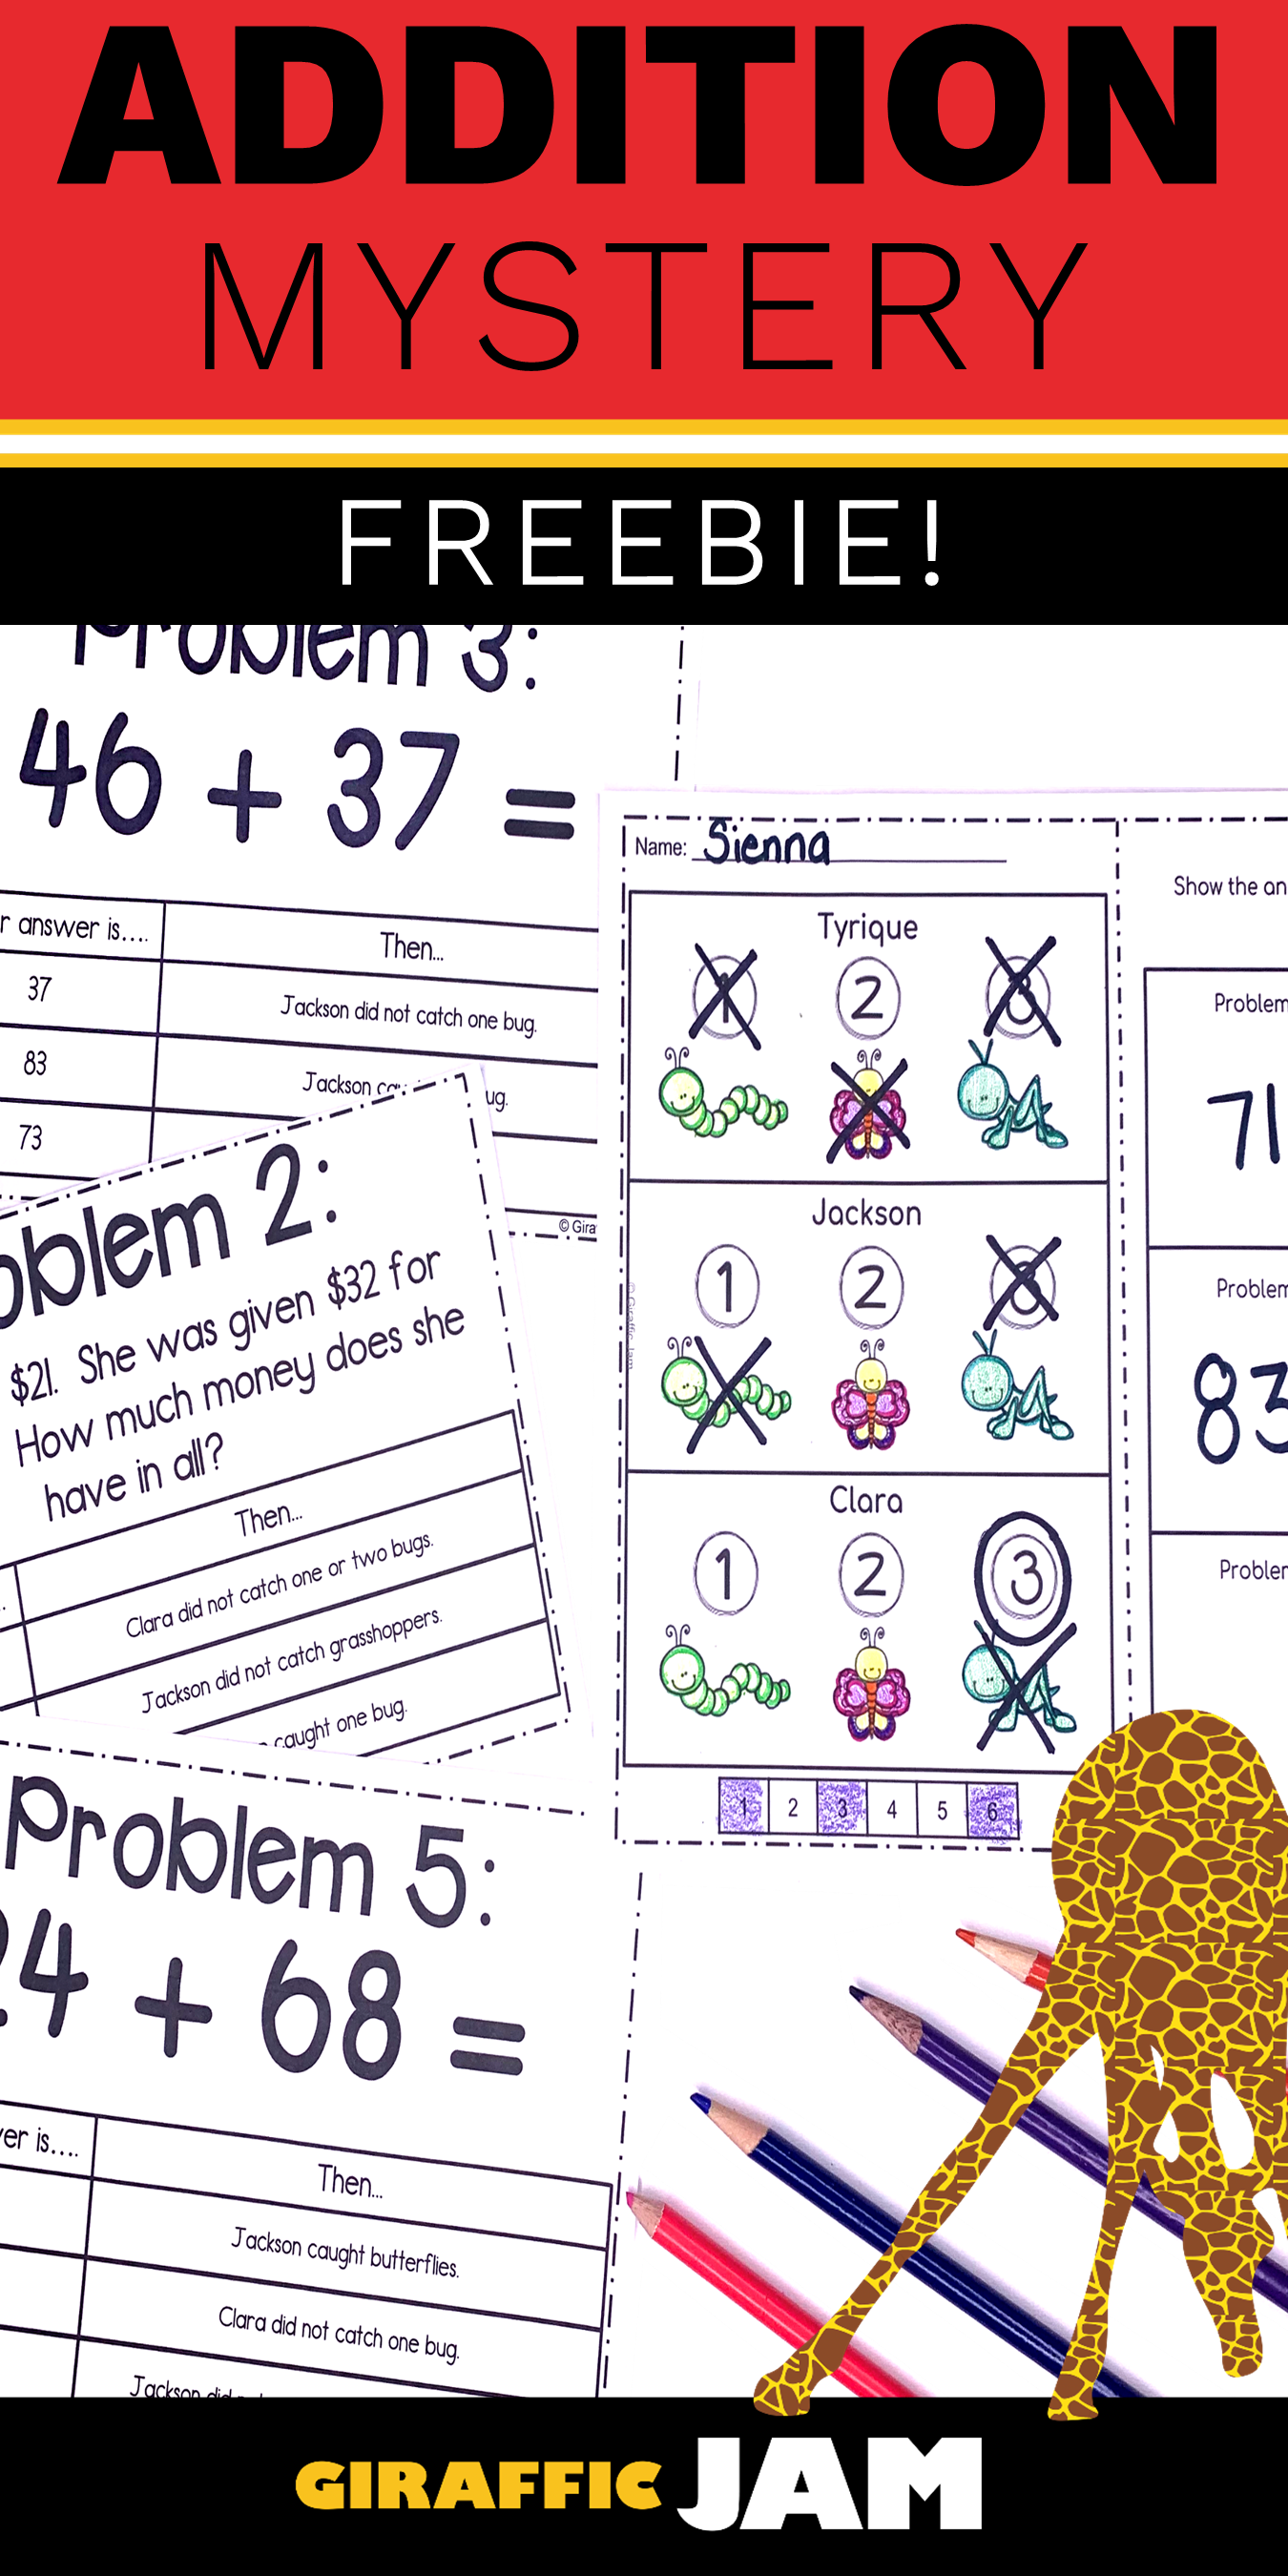 Are You Looking For A Hands On Way To Review Addition With